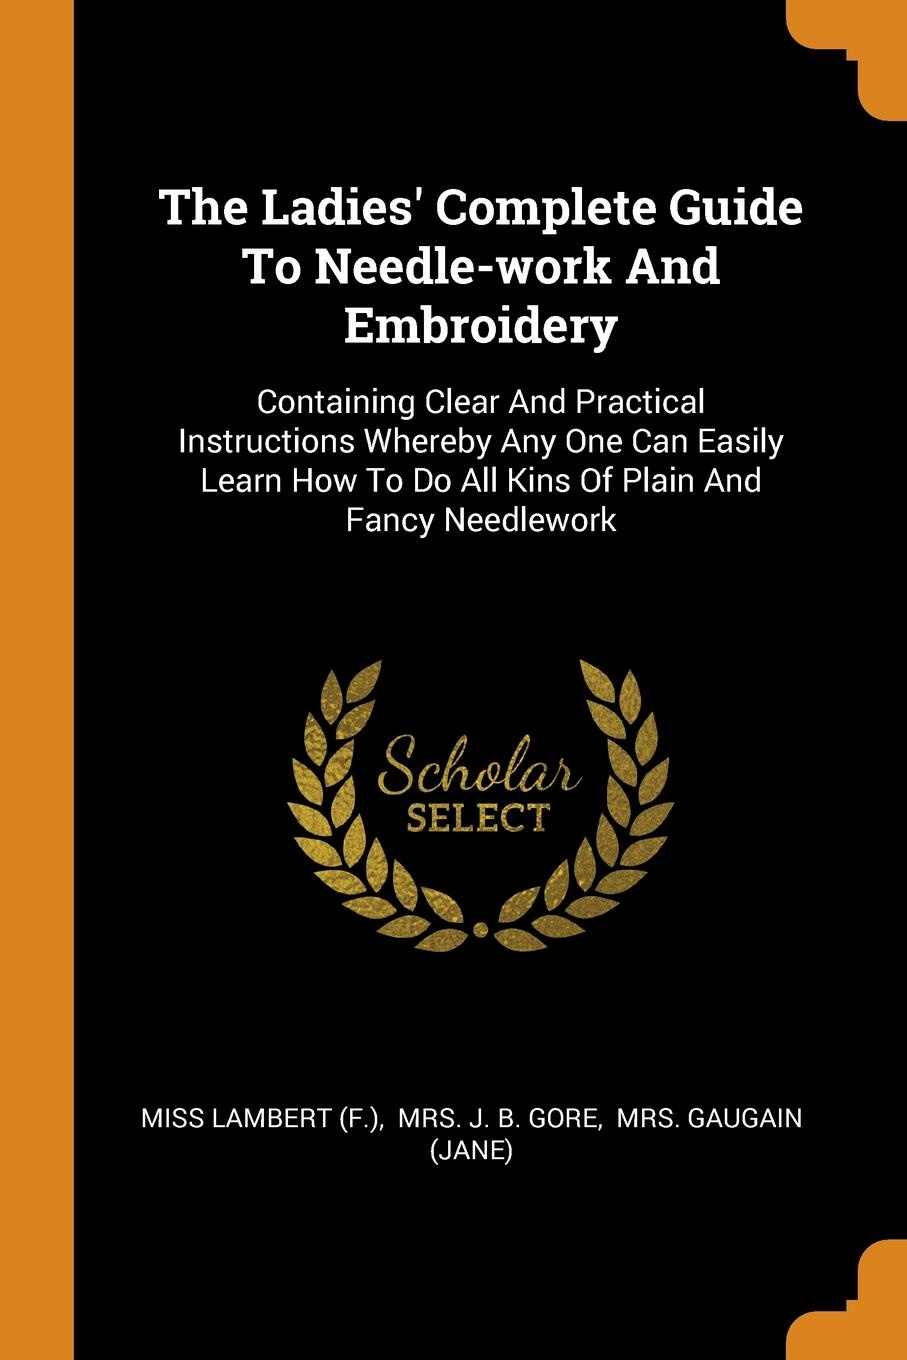 The Ladies. Complete Guide To Needle-work And Embroidery. Containing Clear And Practical Instructions Whereby Any One Can Easily Learn How To Do All Kins Of Plain And Fancy Needlework